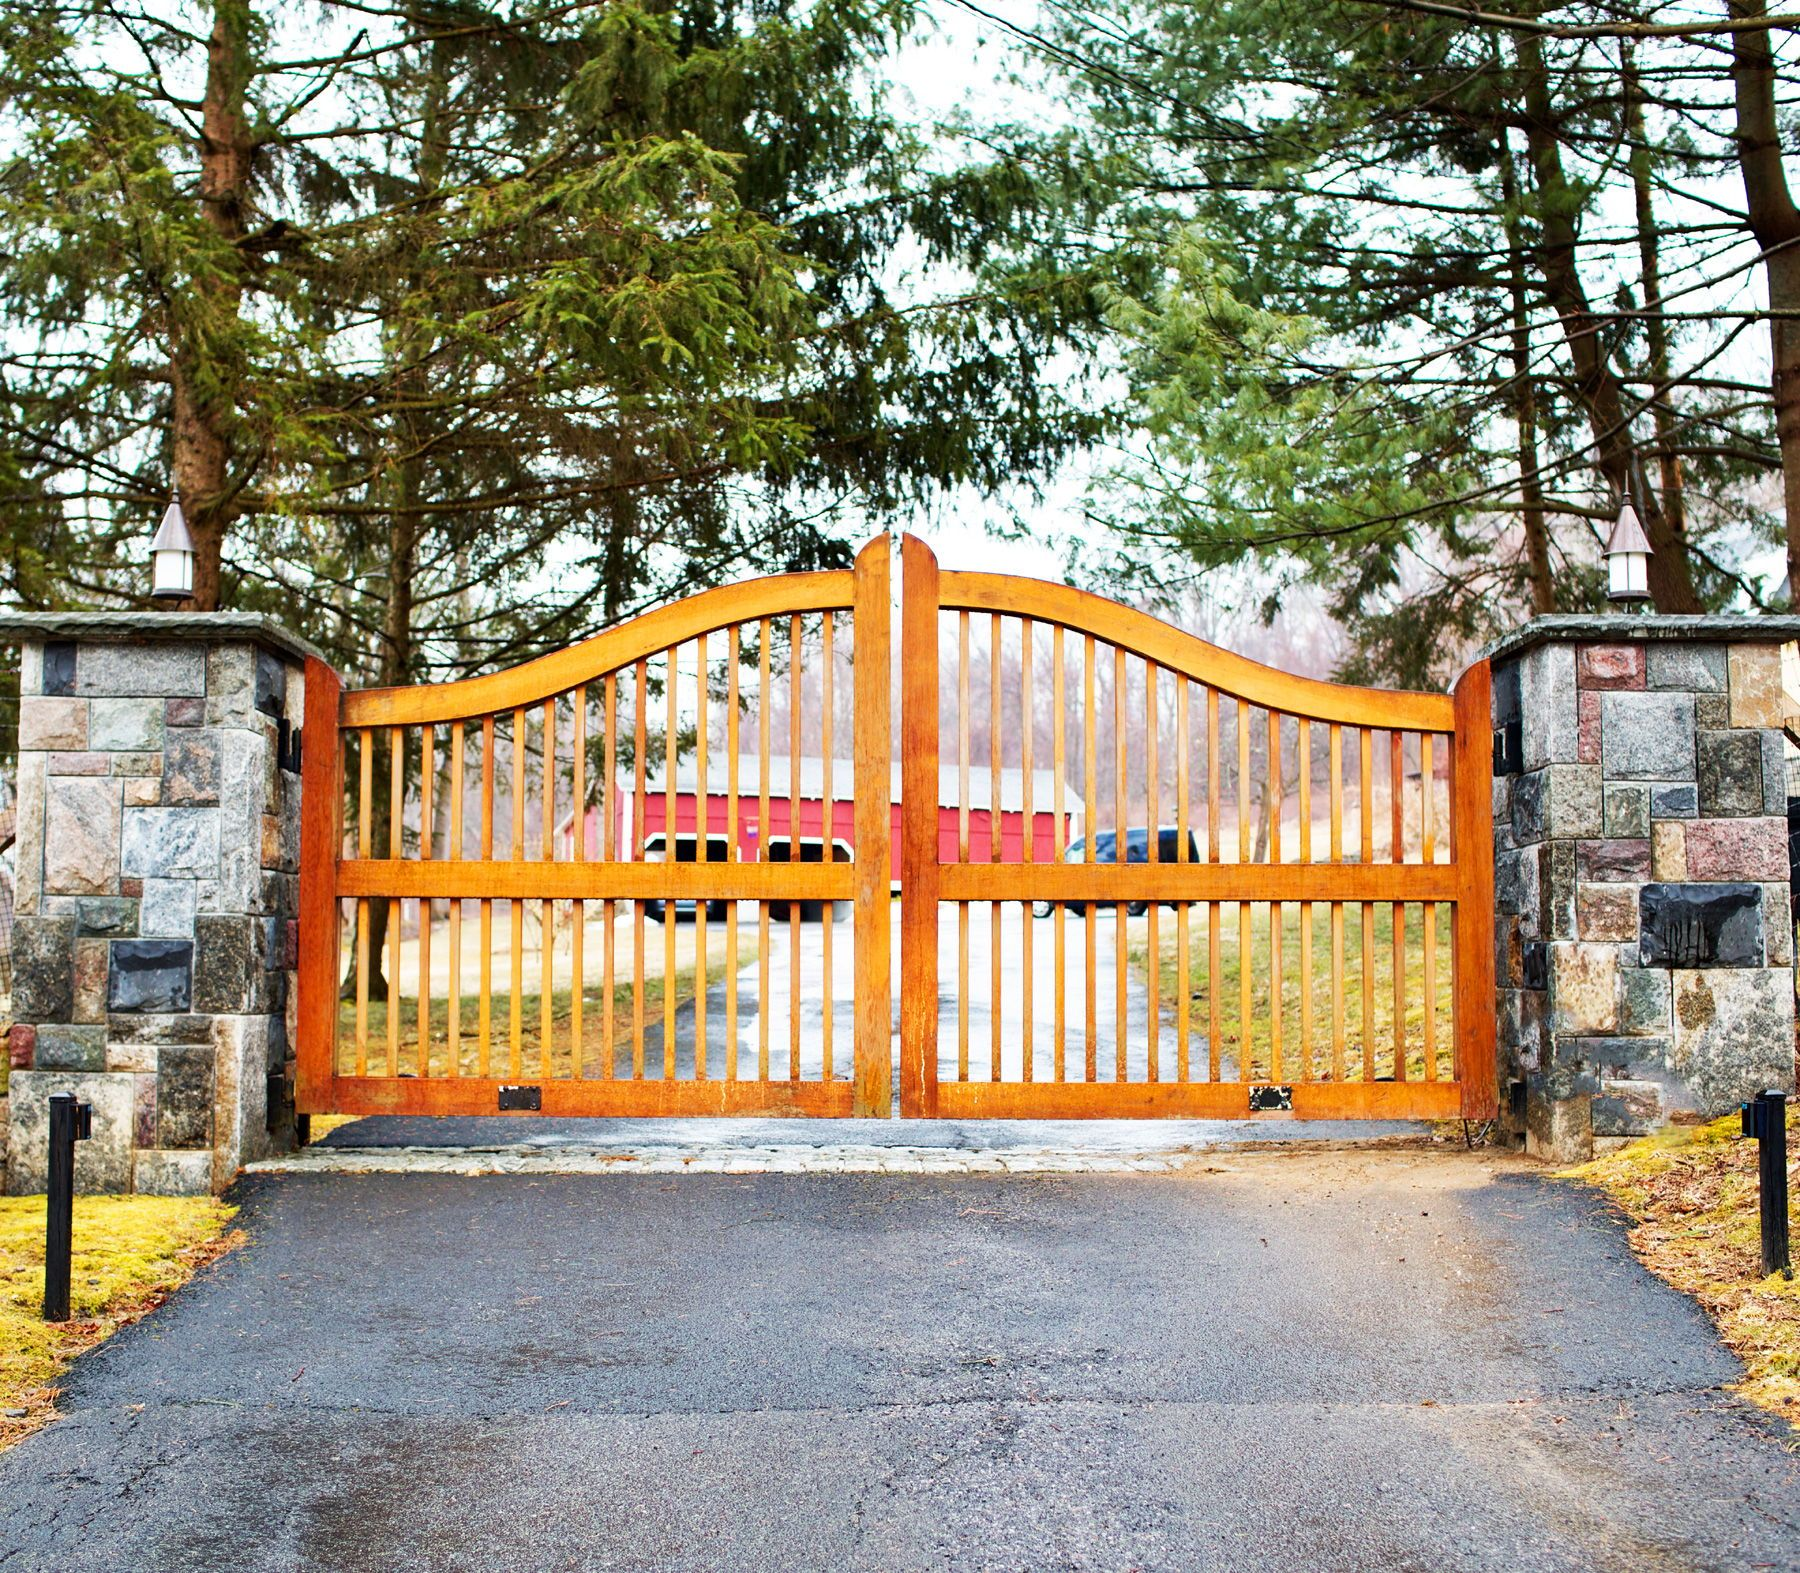 A Simple Wooden Driveway Gate With Clear Stain To Let The Wood Grain And Color Come Through Installed By Tri S Wooden Gates Driveway Driveway Gate Gate Design,Drawing Sacred Heart Of Jesus Tattoo Designs